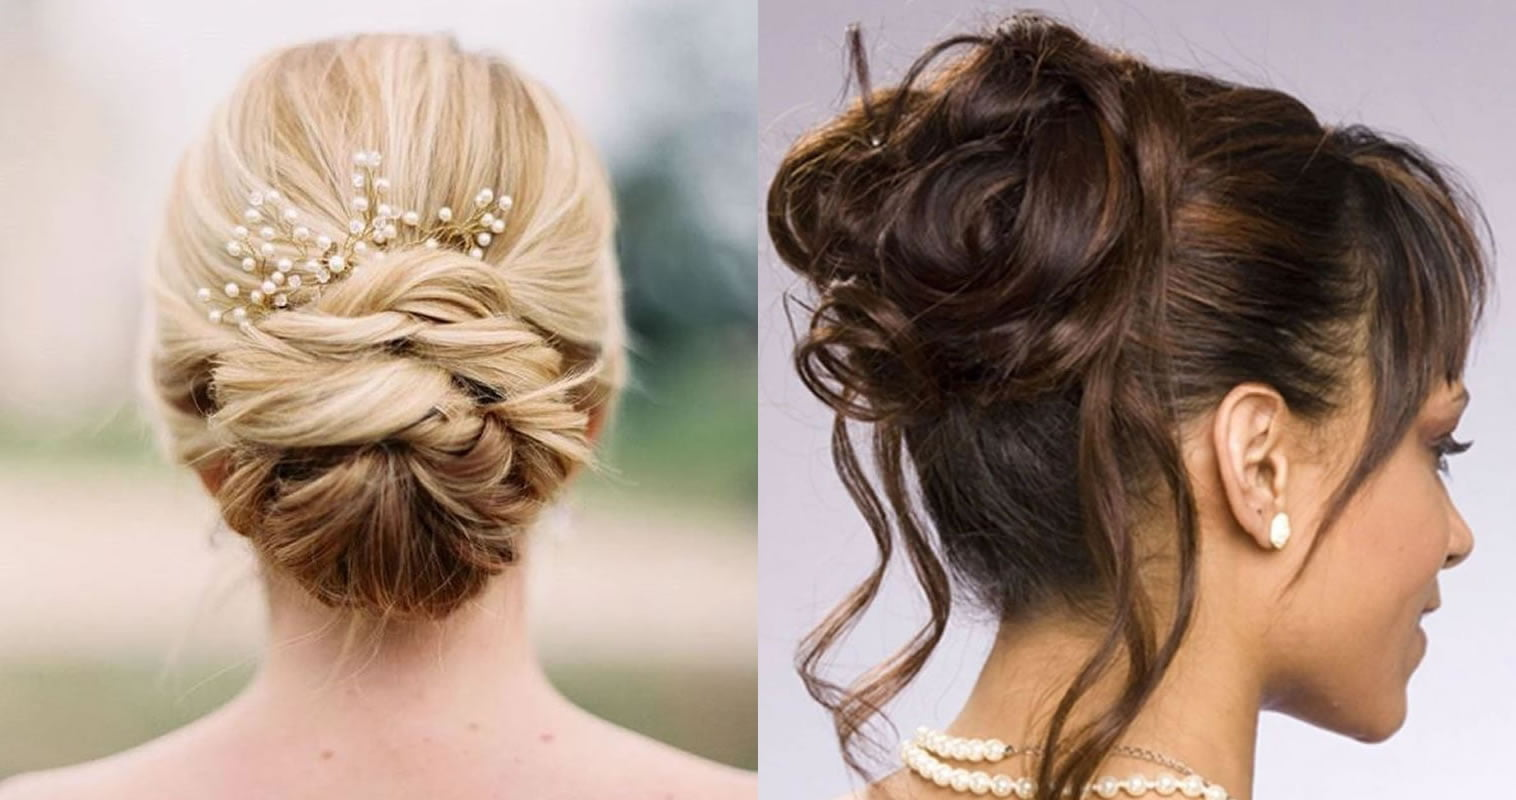 10 Beautiful Updo Hairstyles For Weddings 2019: Upde Hair Idea For Ladies